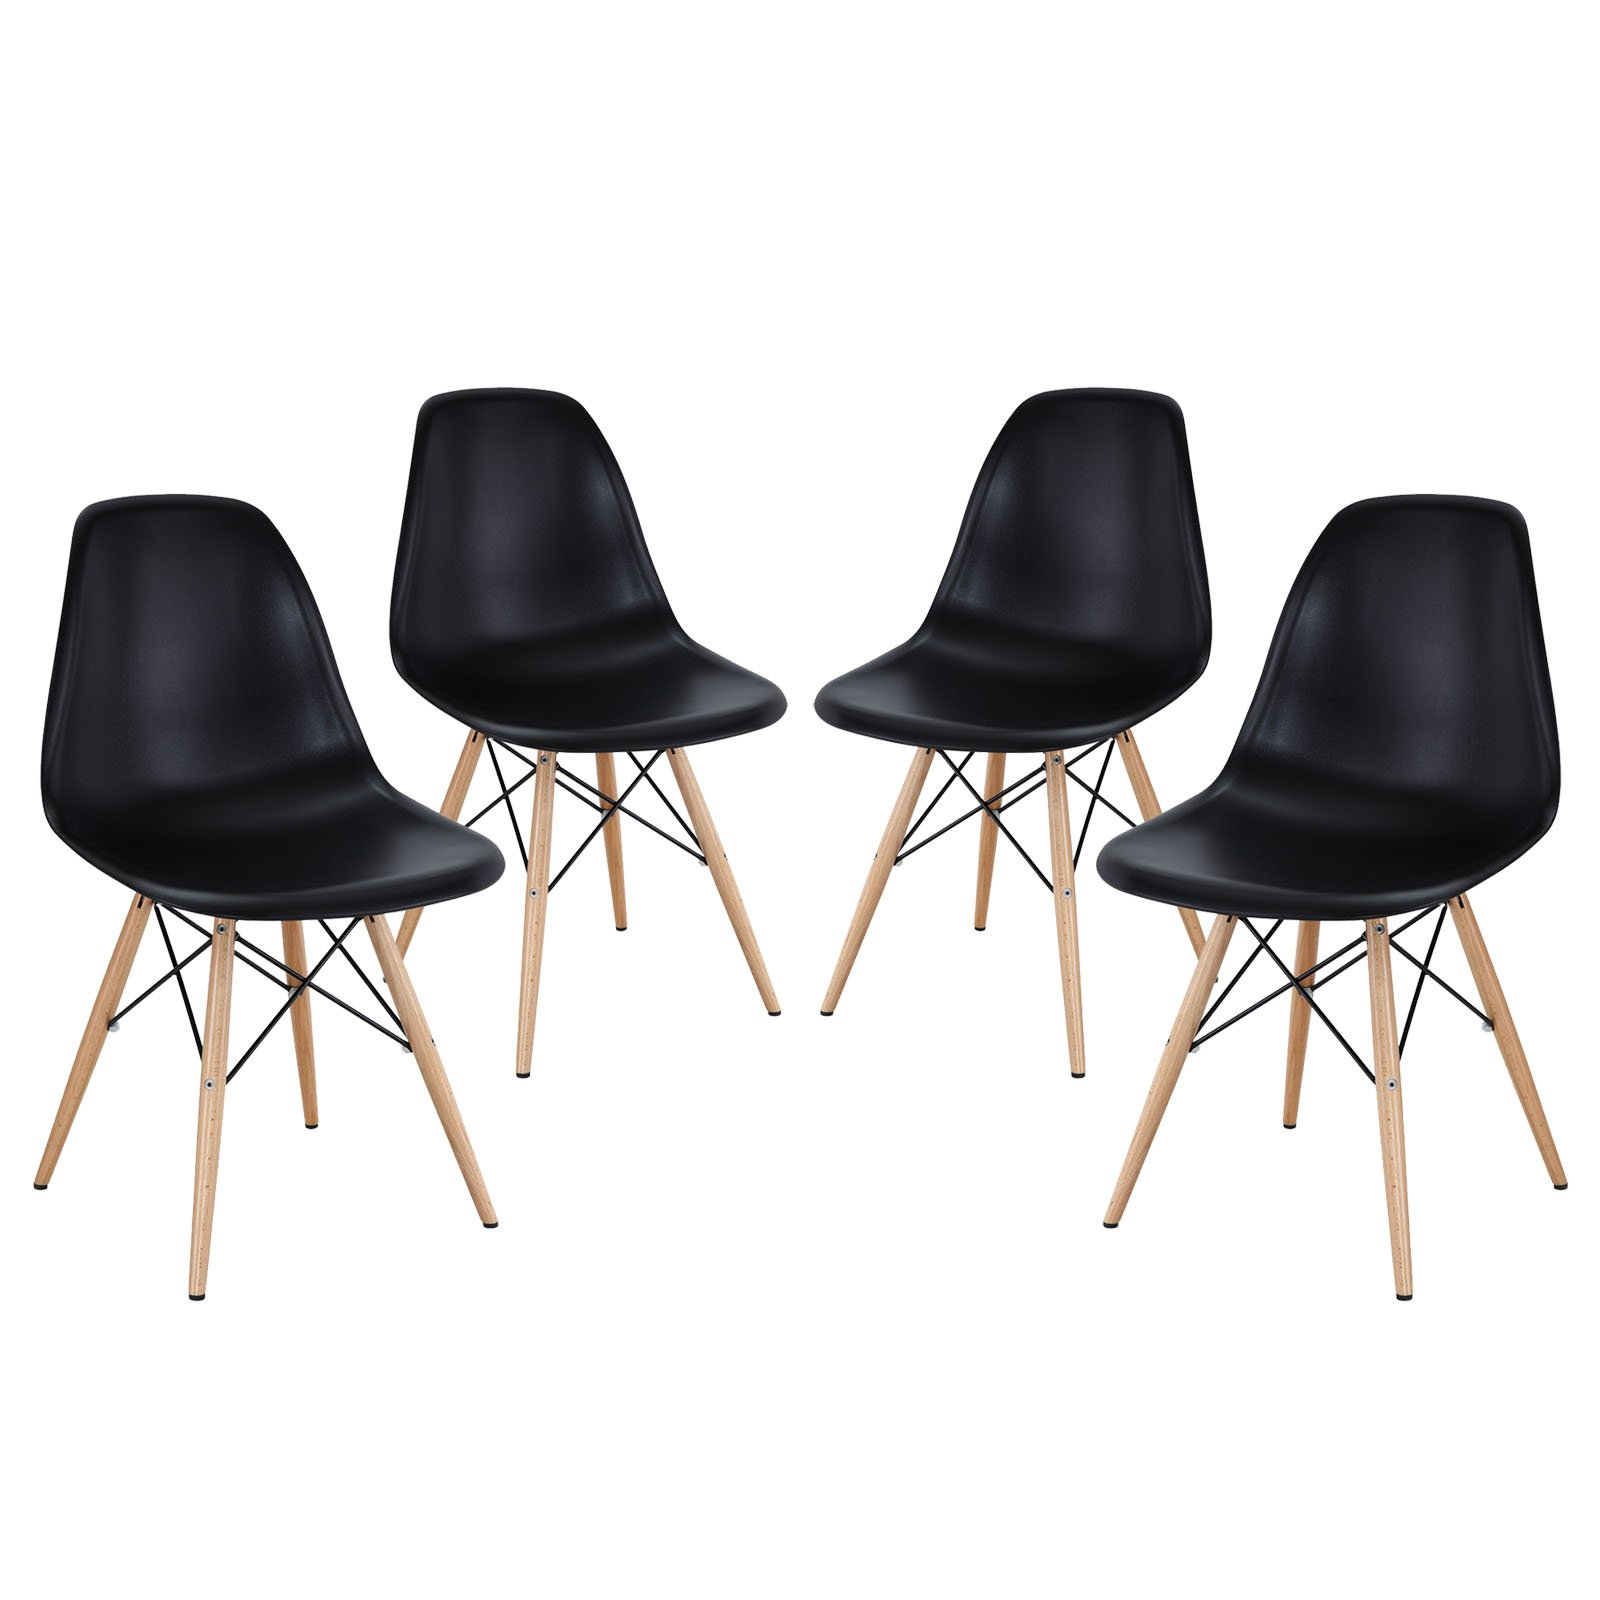 Modway Pyramid Mid-Century Modern with Natural Wood Legs, Four Dining Side Chairs, Black